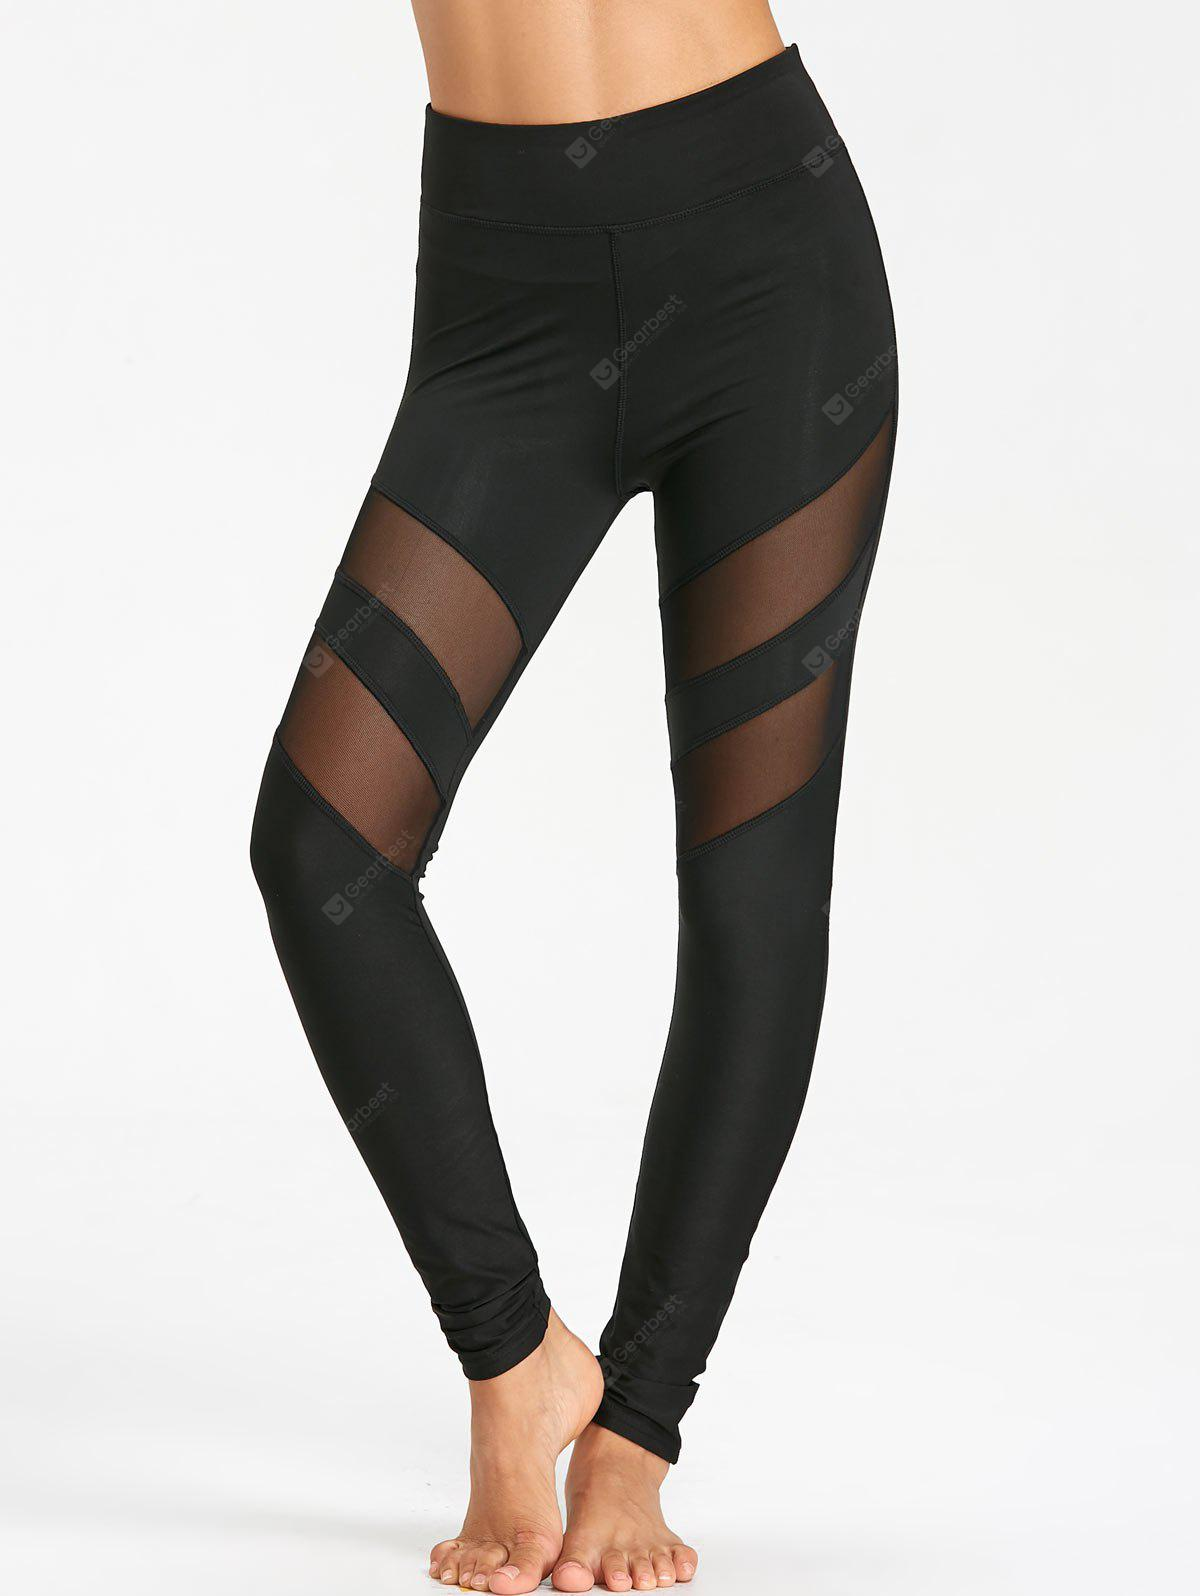 High Waist Workout Leggings With Mesh